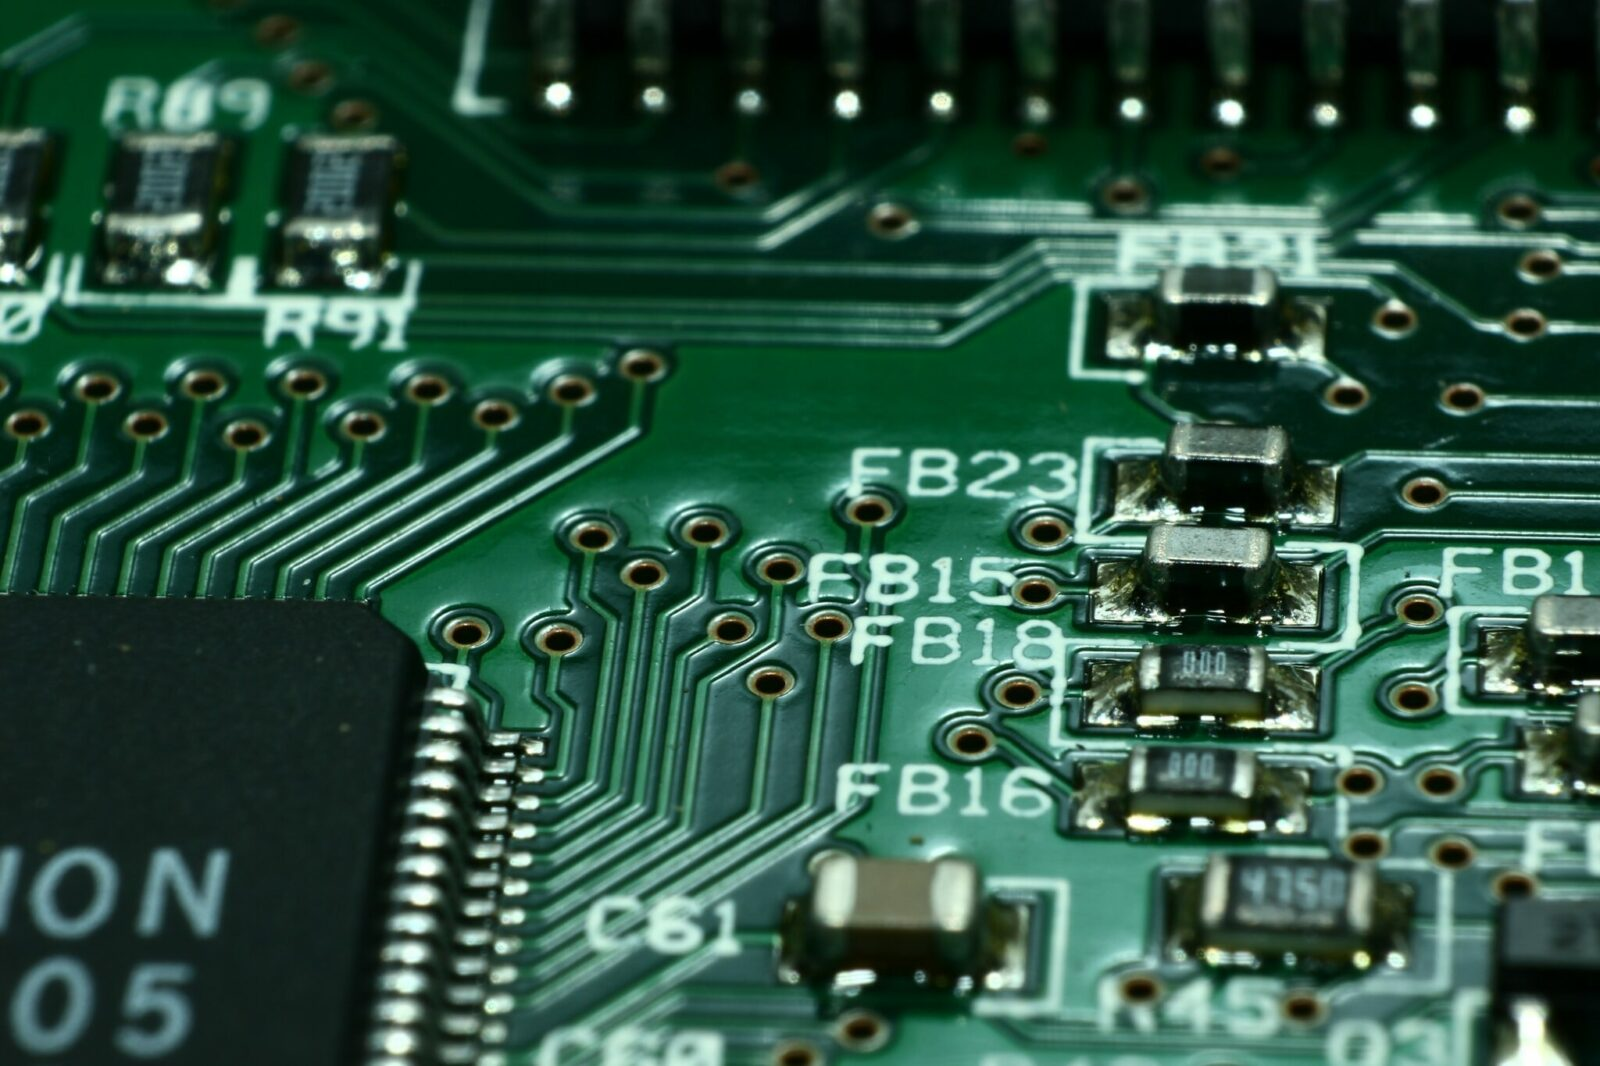 Photo of printed circuit board